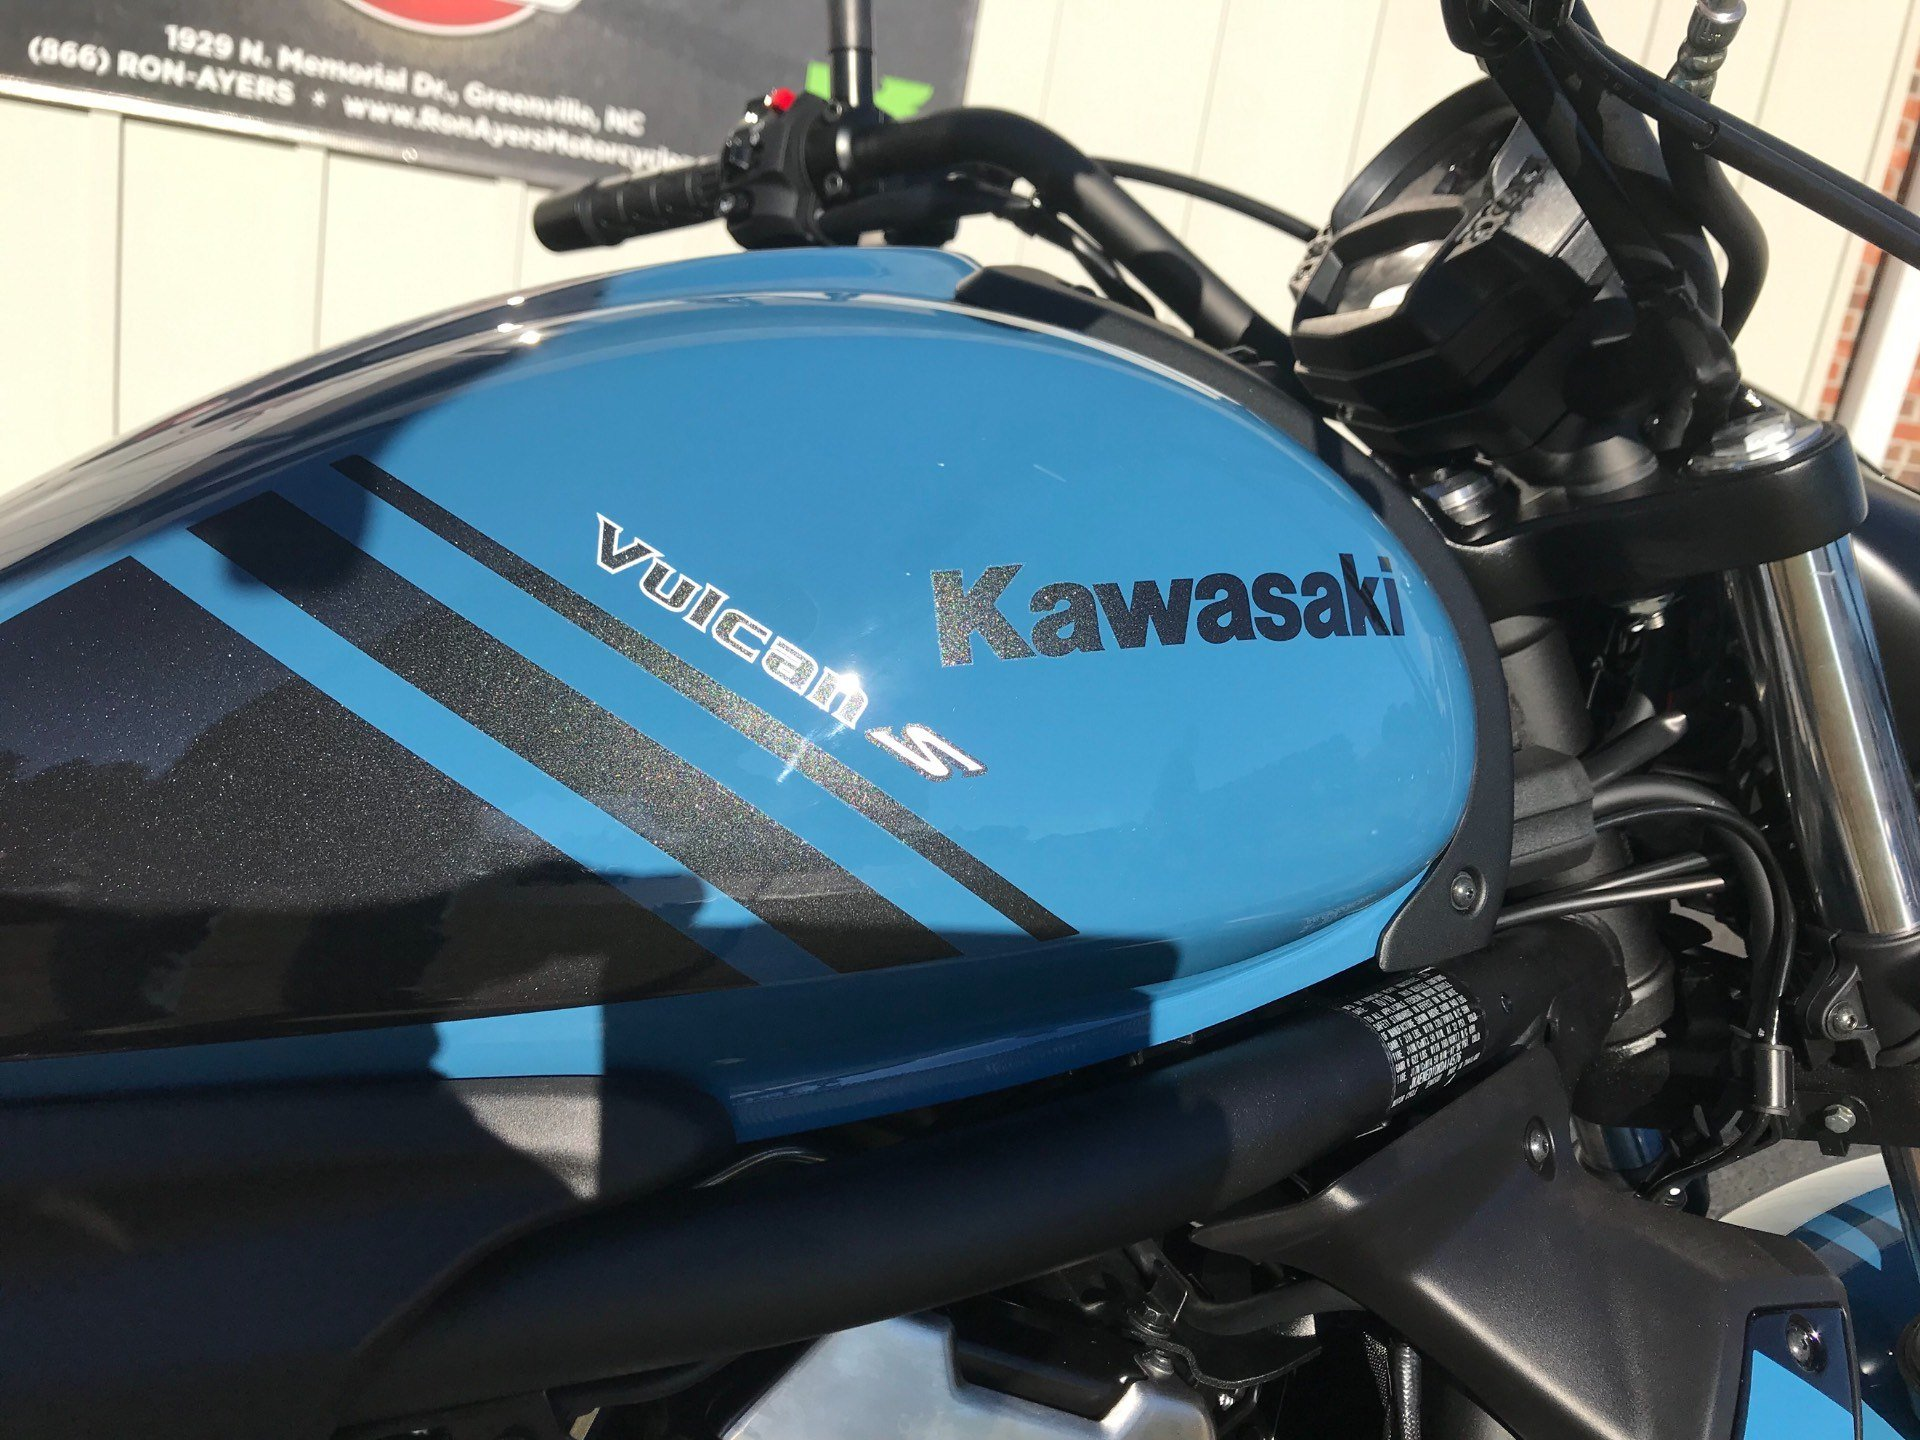 2019 Kawasaki Vulcan S ABS in Greenville, North Carolina - Photo 14